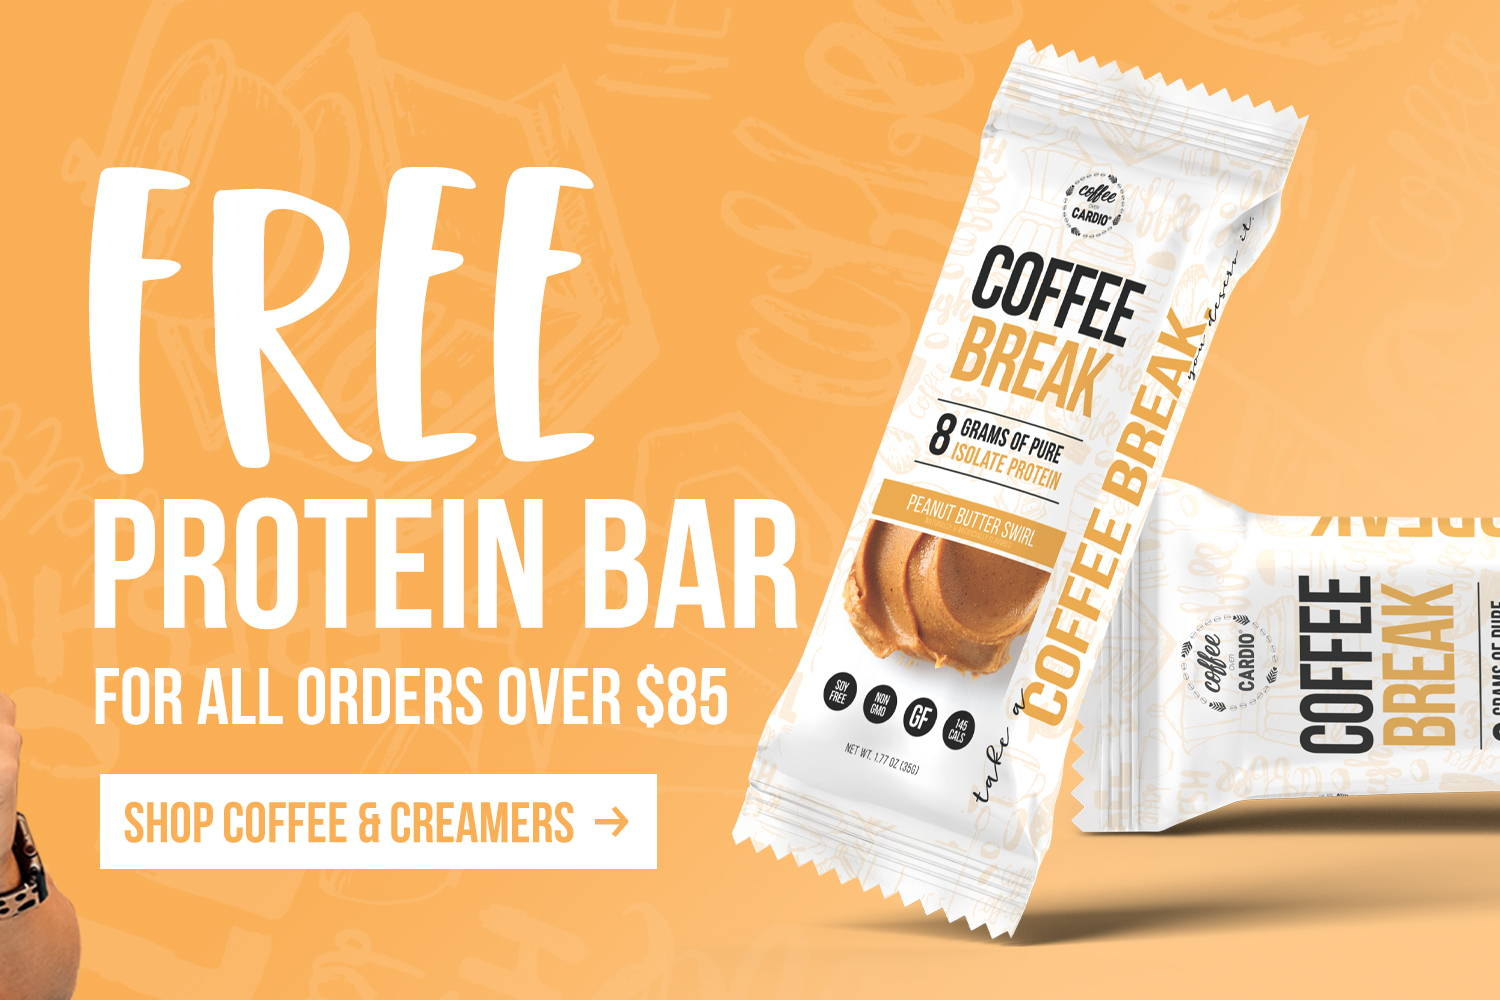 Coffee Break -  Protein Bar - Peanut Butter Swirl- Coffee Over Cardio